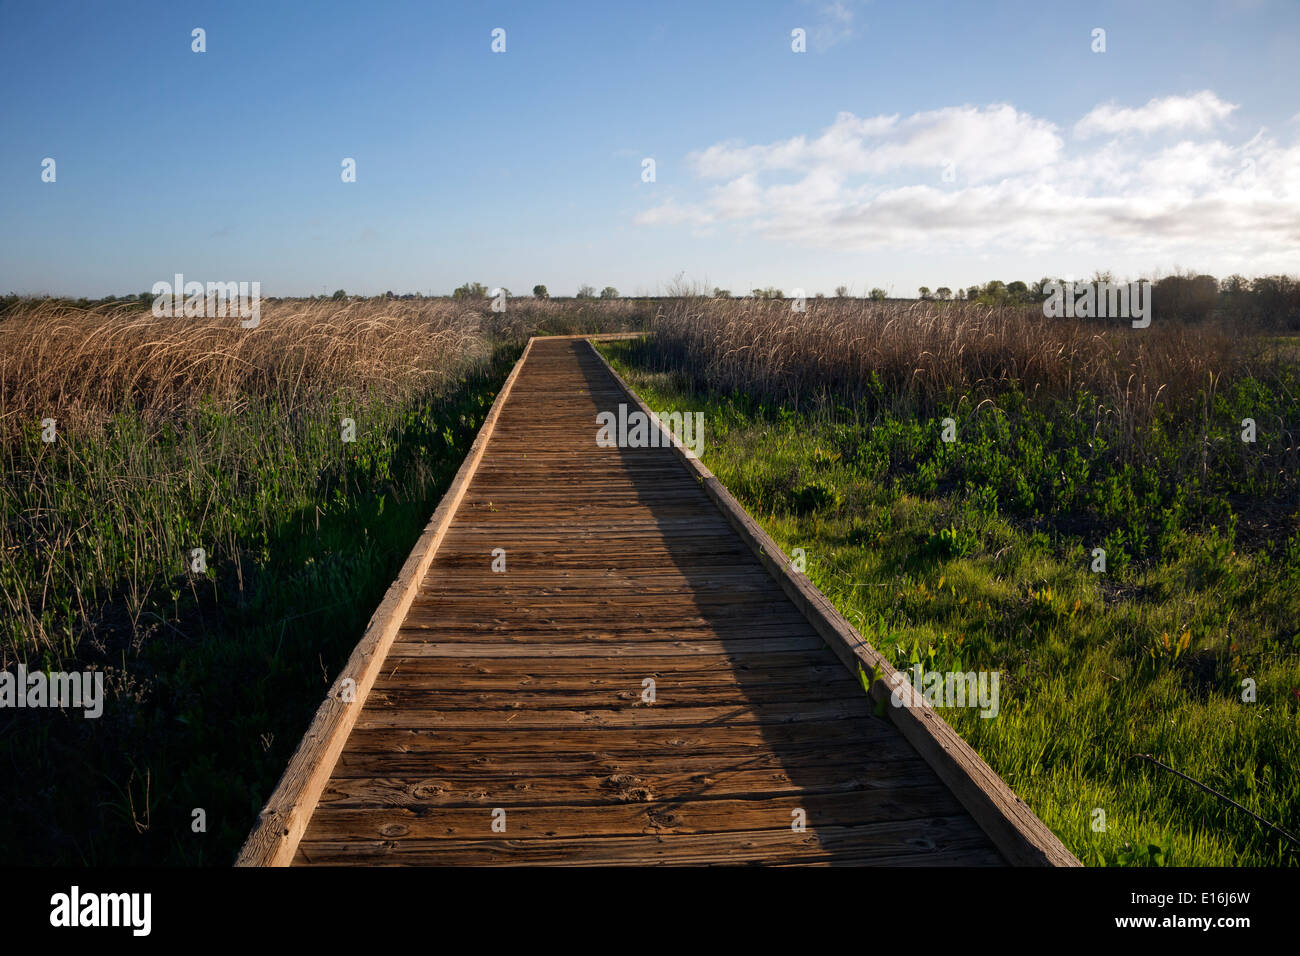 CALIFORNIA - Boardwalk through the wetlands at the Cosumes River Preserve Wildlife Area in the Central Valley. - Stock Image